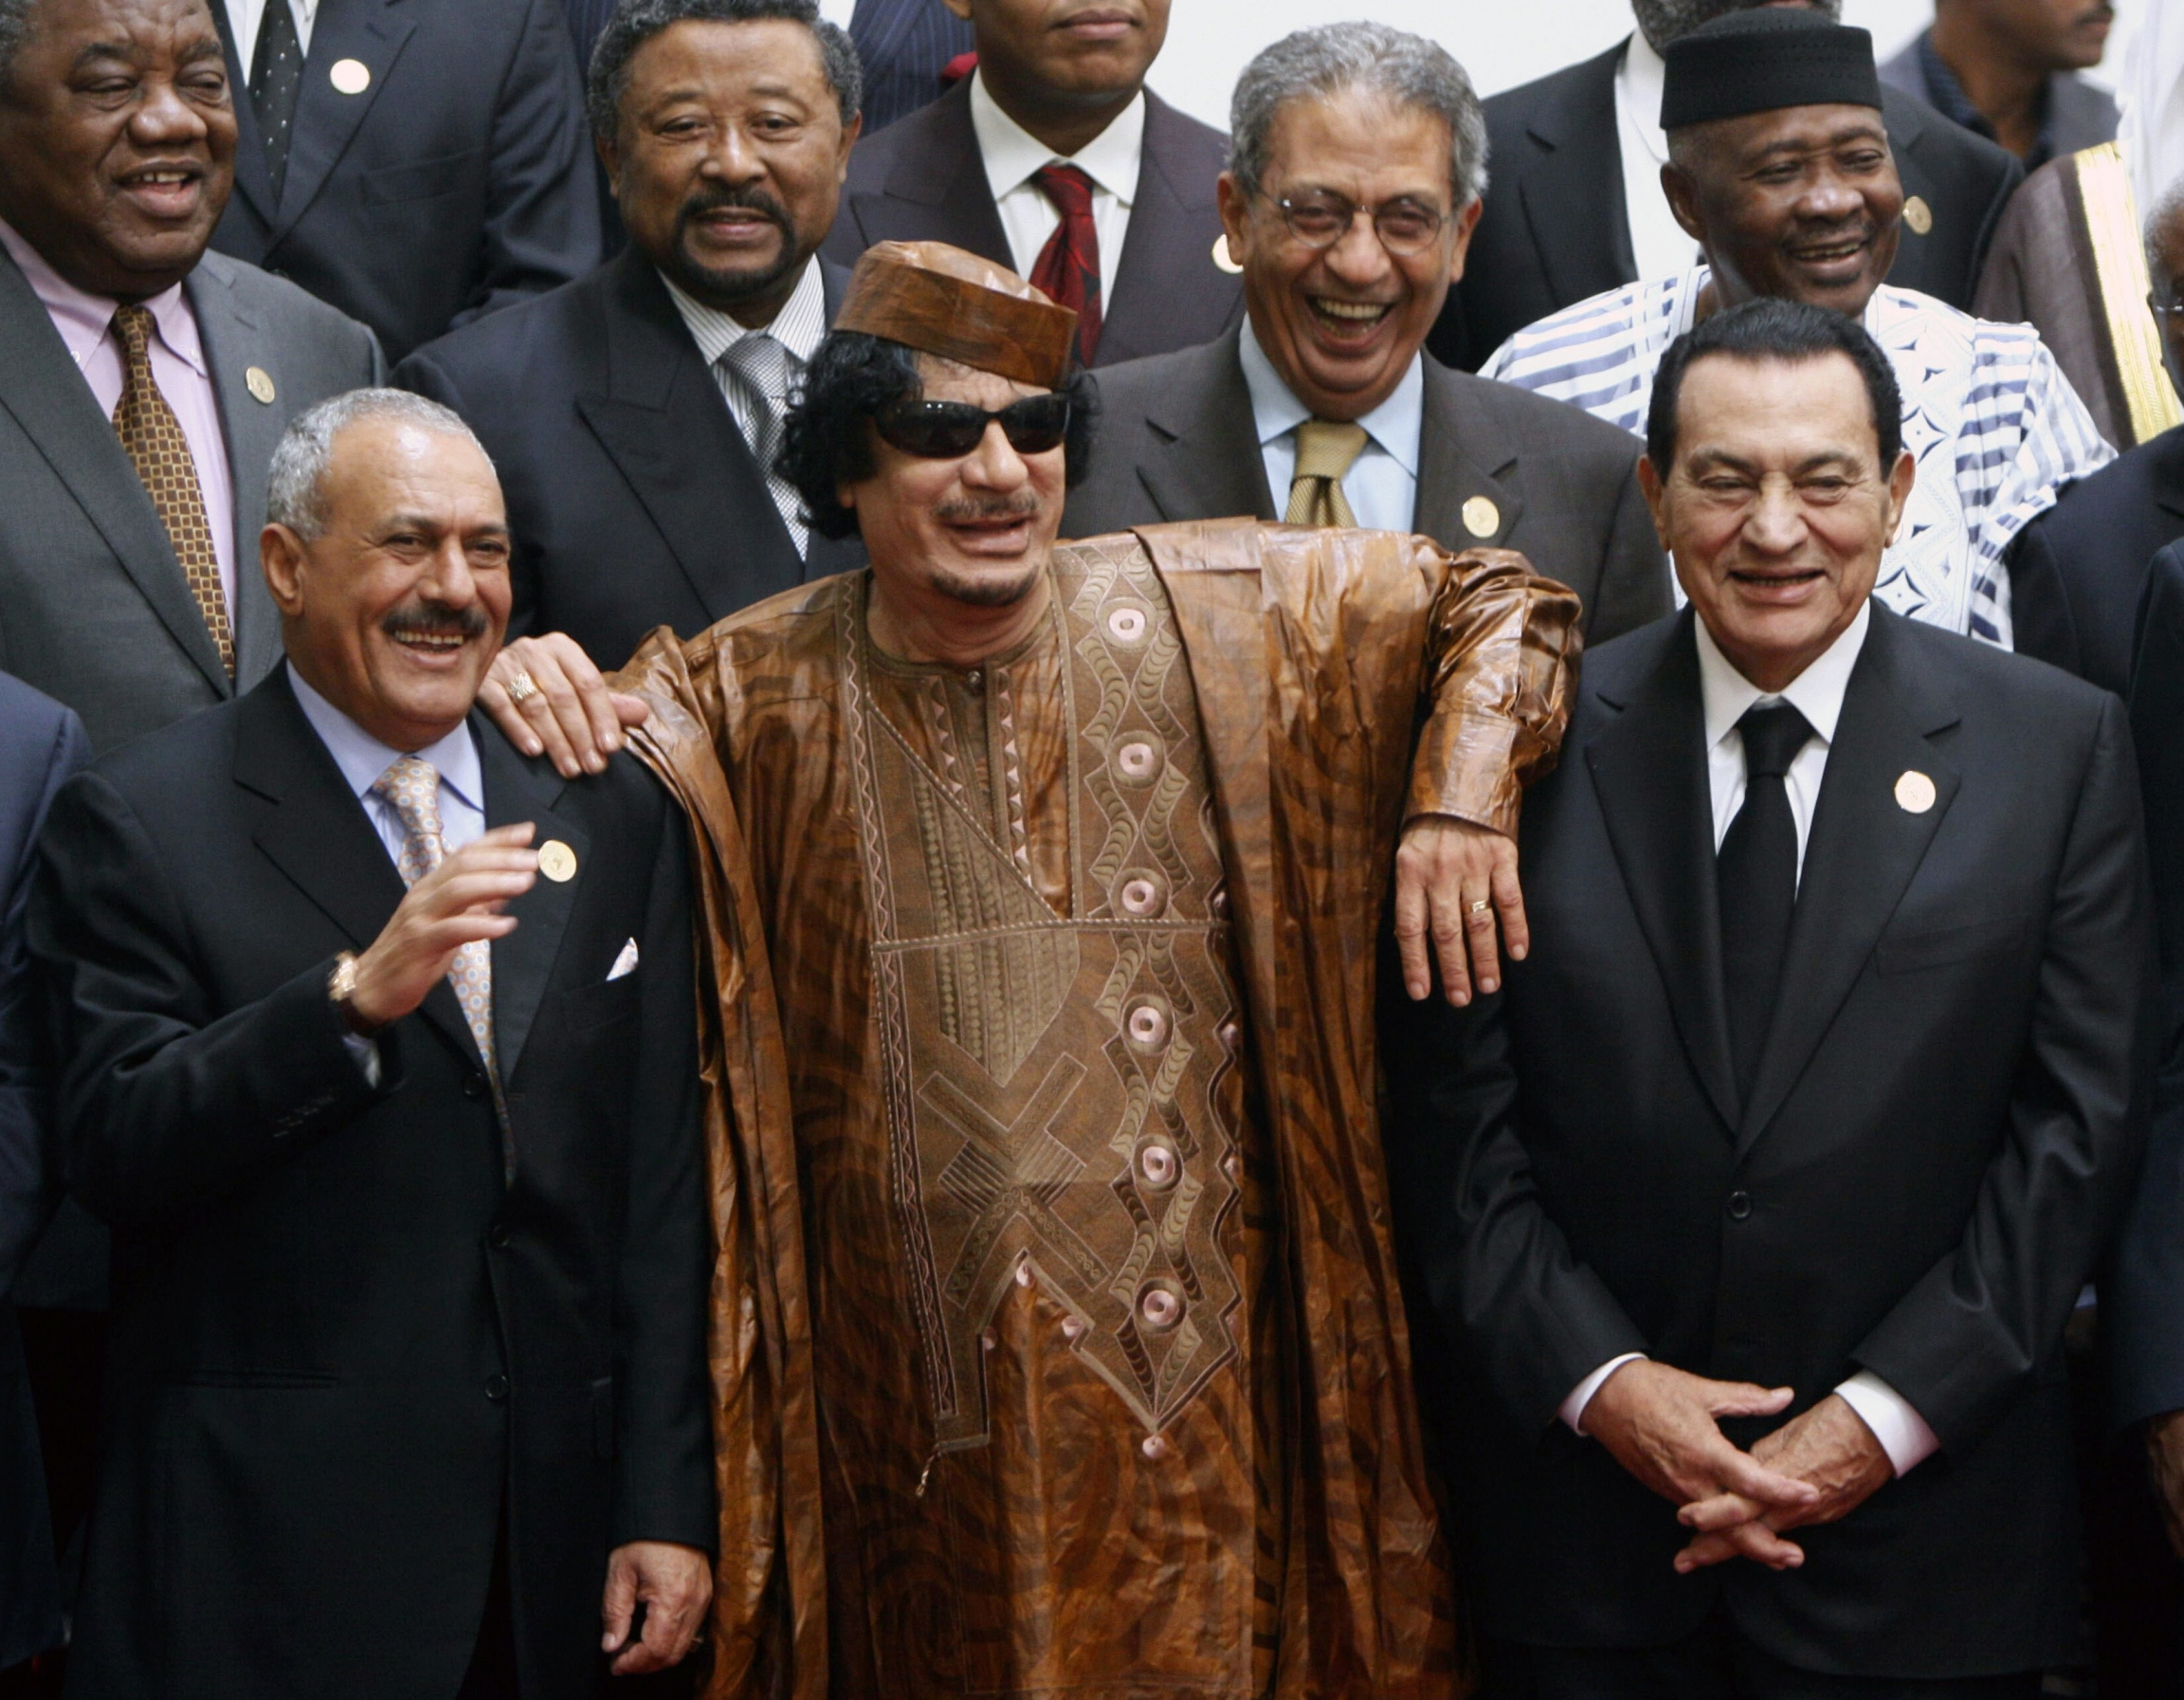 In this Oct. 10, 2010 file photo, Libyan leader Moammar Gadhafi, center, with Egyptian President Hosni Mubarak, right, and his Yemeni counterpart Ali Abdullah Saleh, left, pose during a group picture with Arab and African leaders during the second Afro-Ar